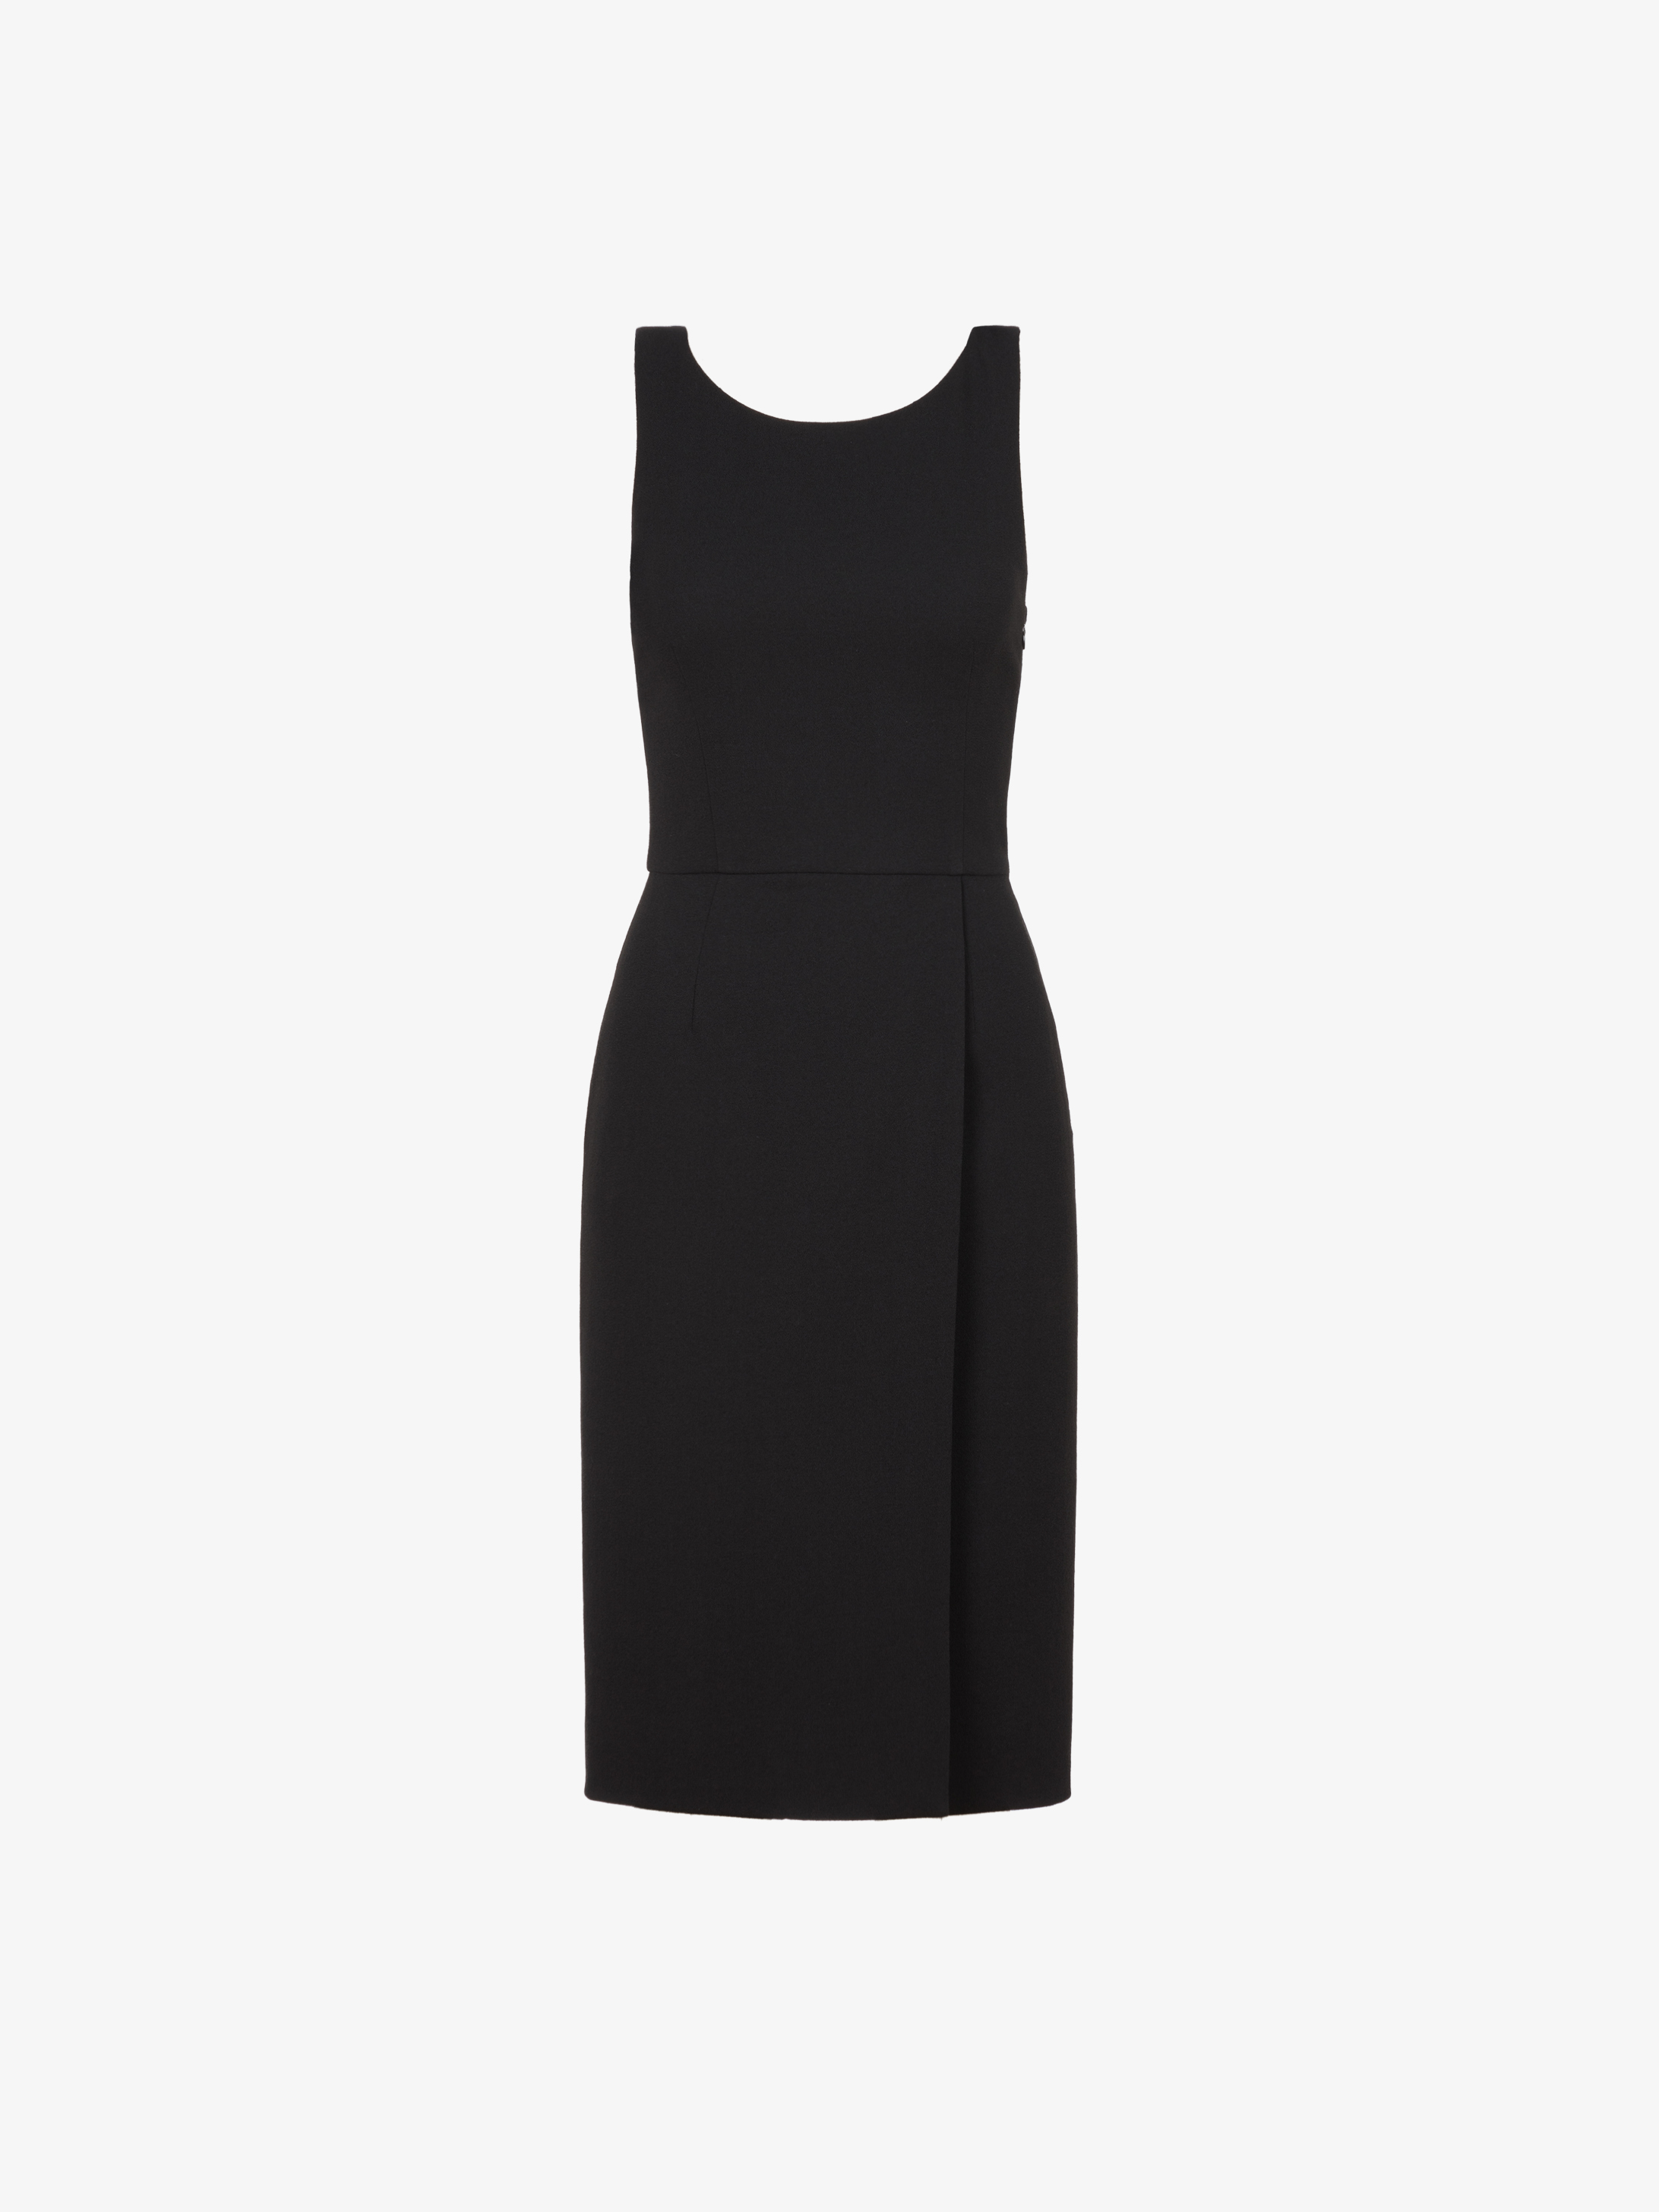 Short dress in wool crepe with graphic neckline